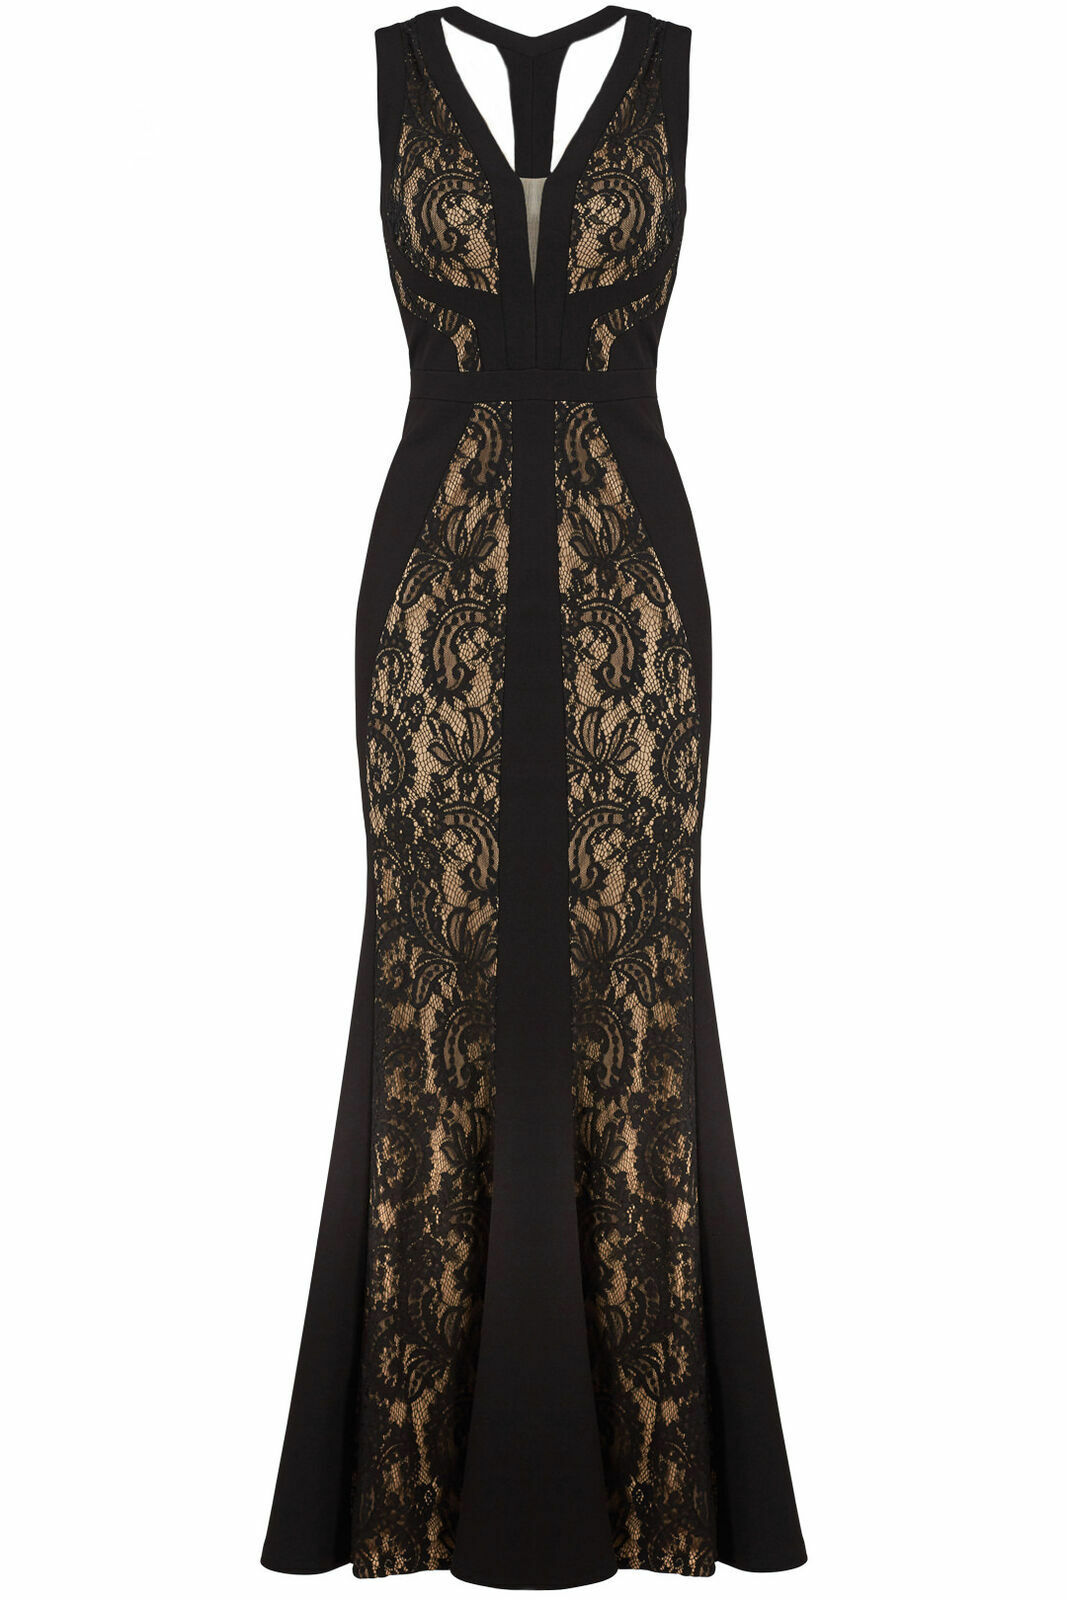 LM Collection Womens Lace Sleeveless Gown Black Beige Size